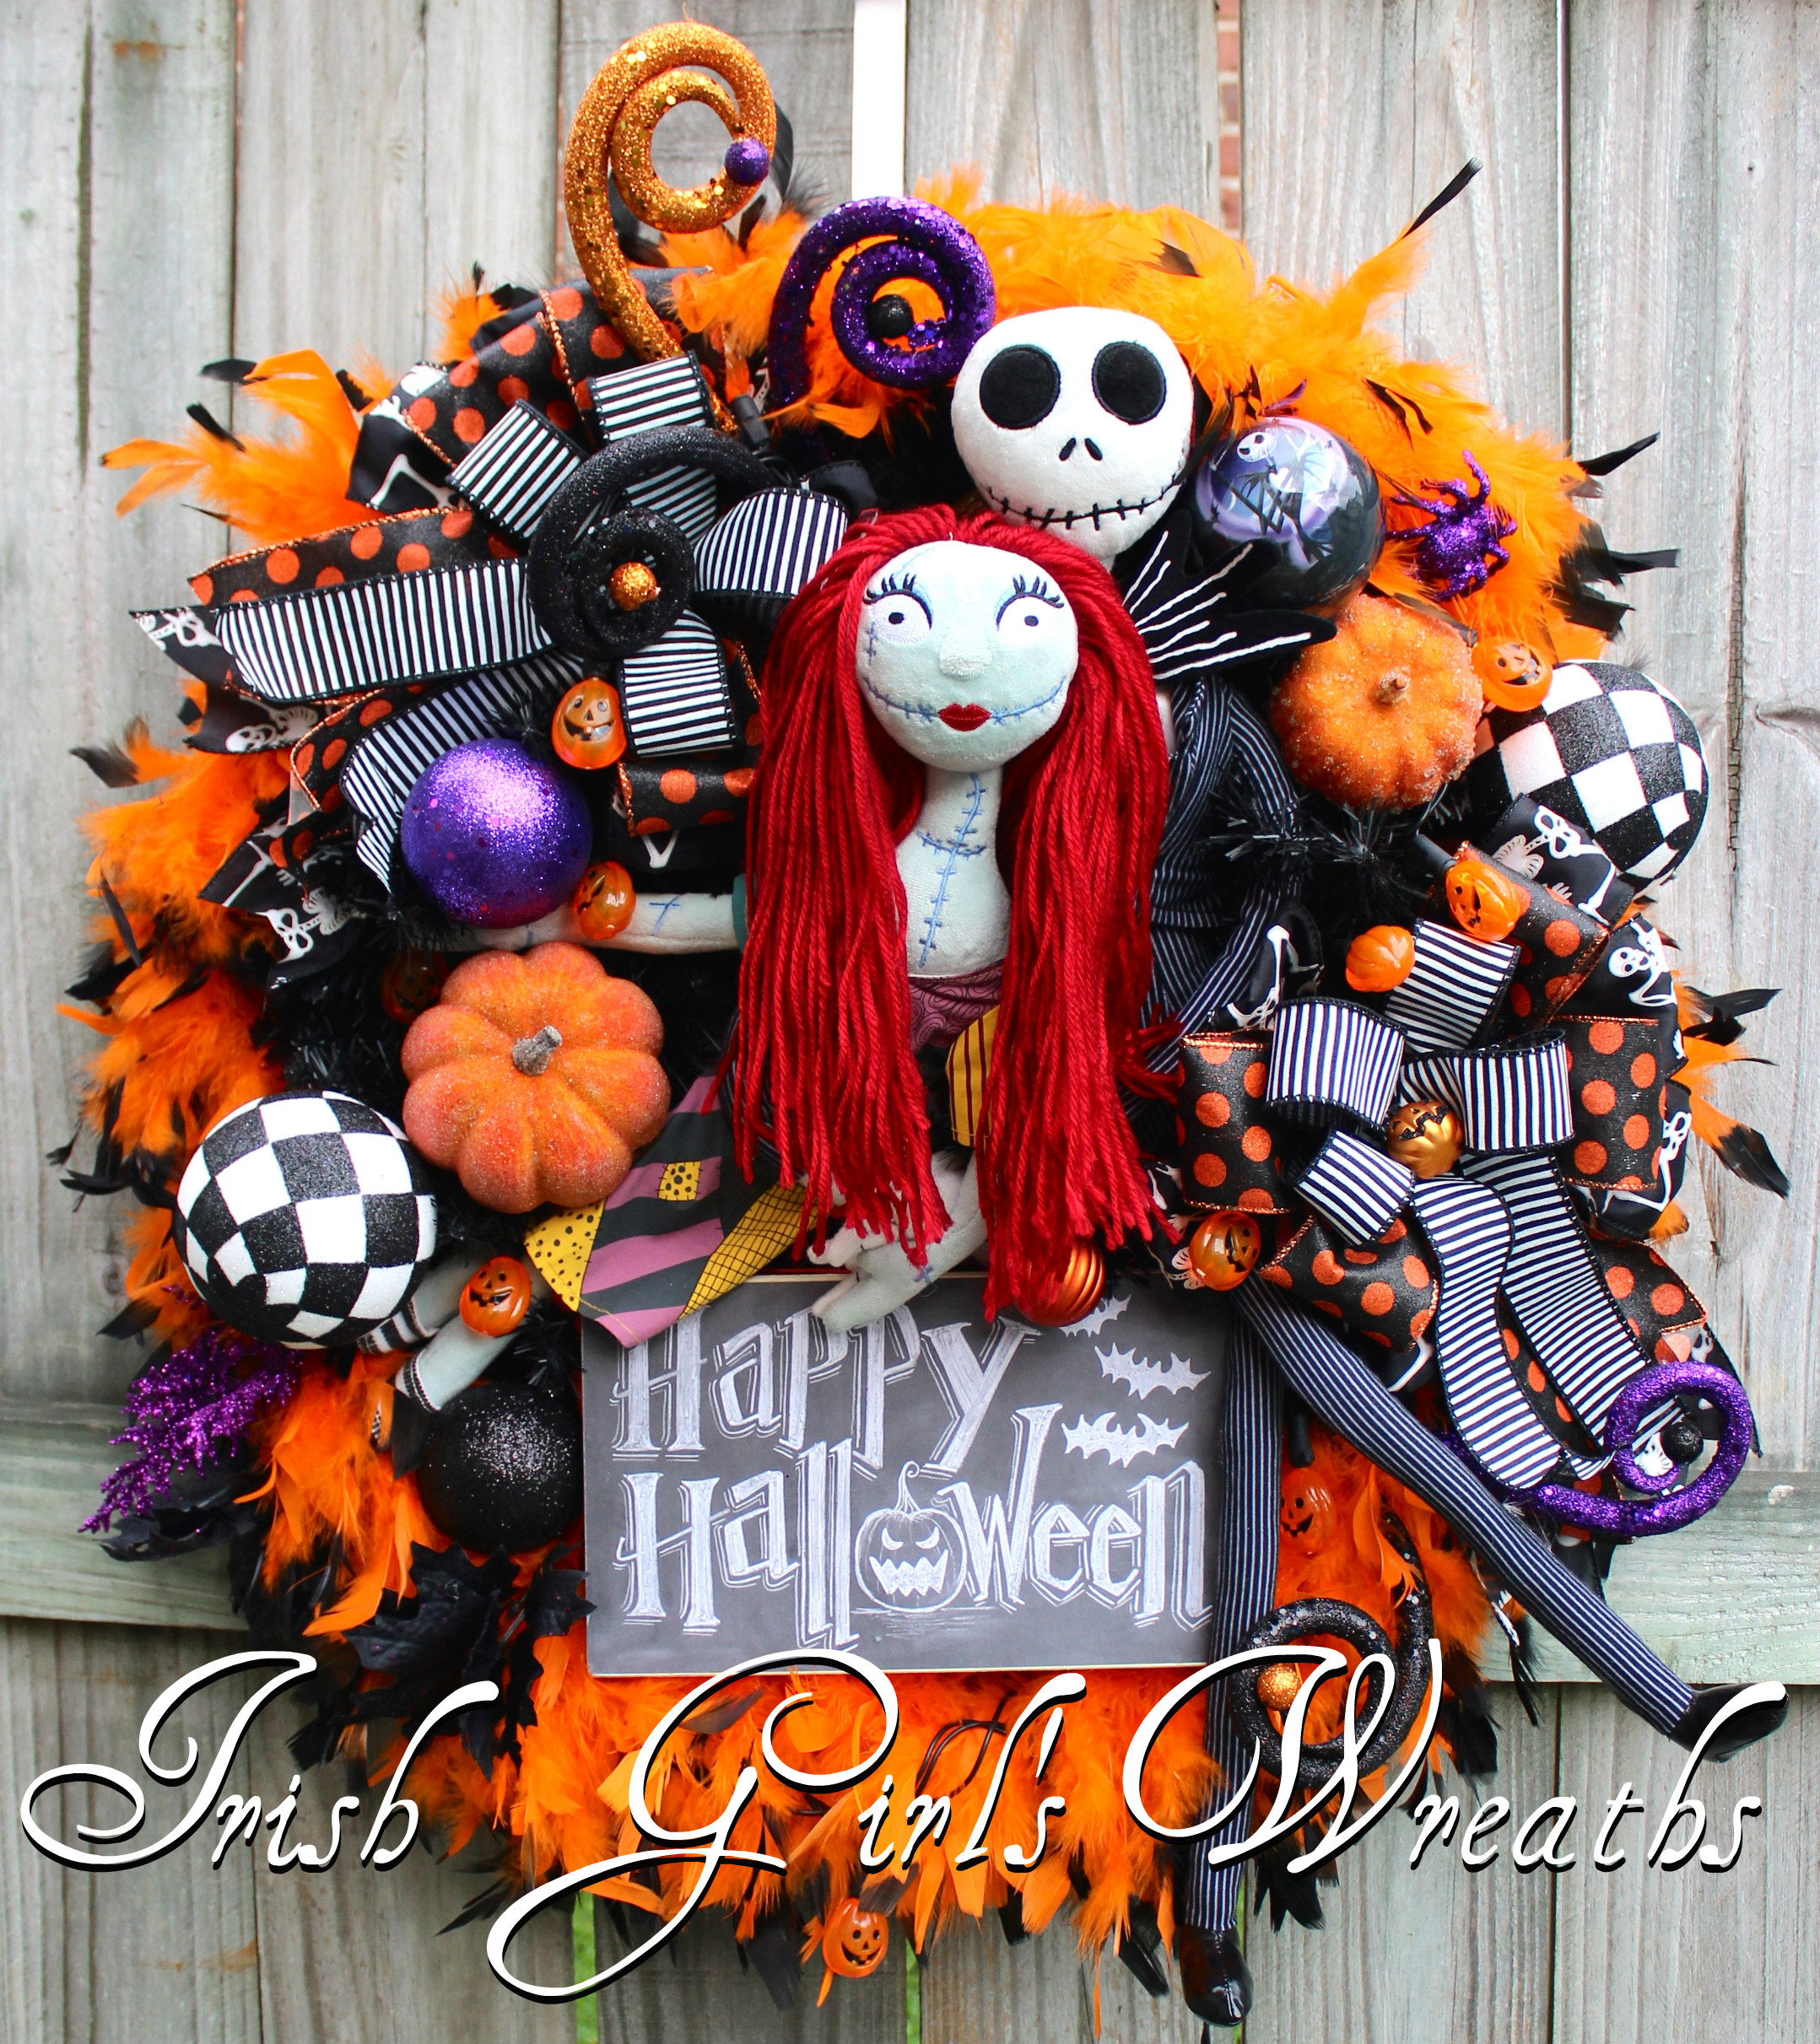 563d5614f6 Nightmare Before Christmas Halloween Wreath